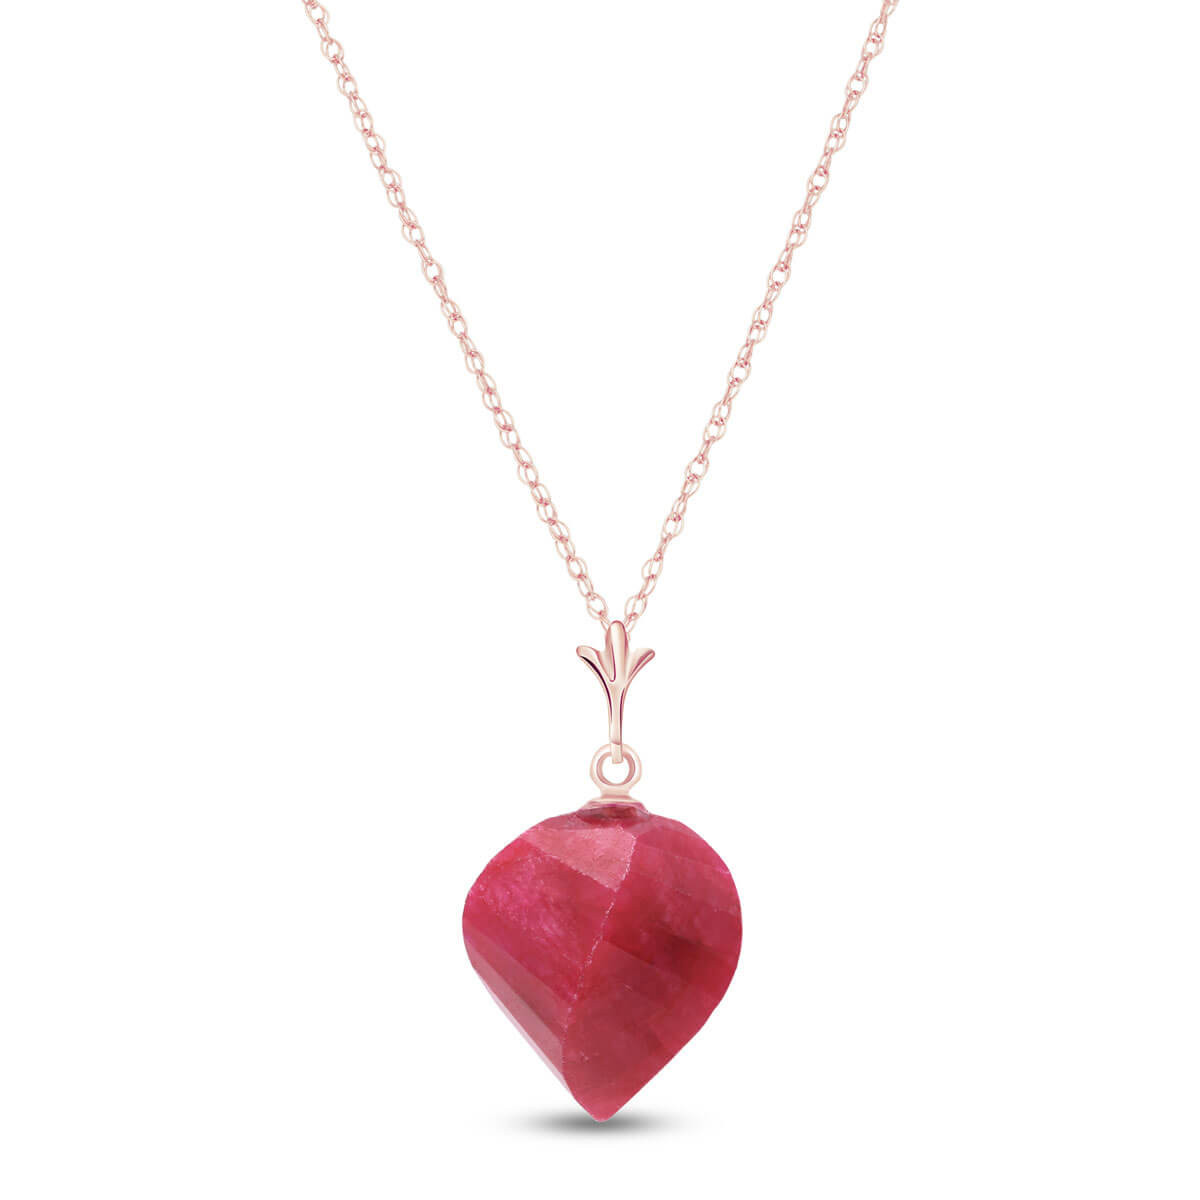 Ruby Briolette Pendant Necklace 15.25 ct in 9ct Rose Gold